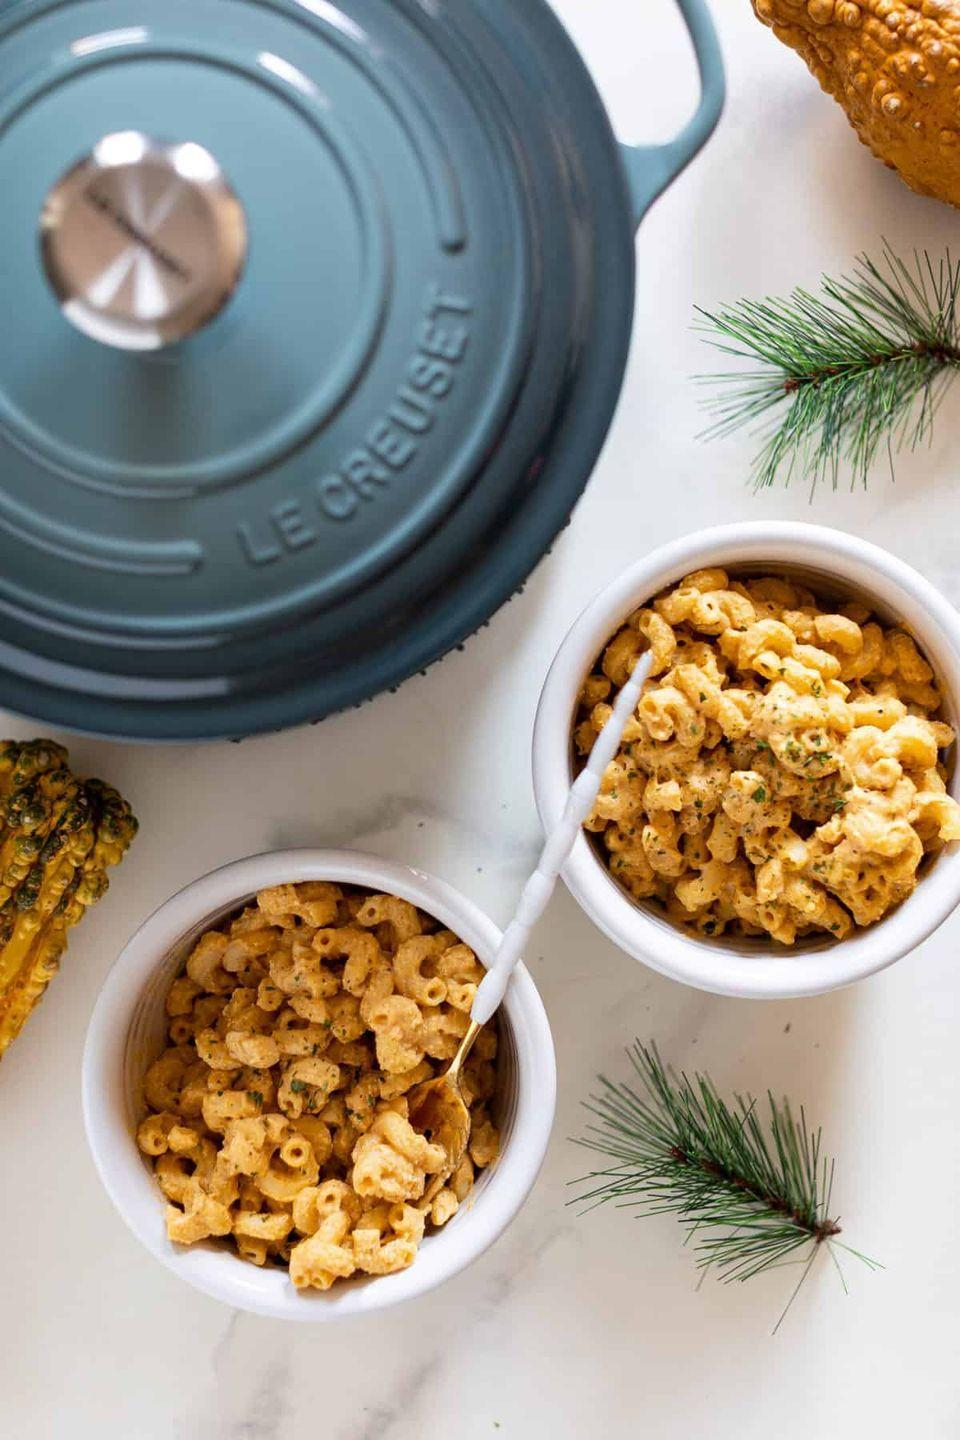 """<p>When you have a craving for comfort food, this healthy version of mac and cheese will hit the spot. A creamy pumpkin sauce with cajun seasoning takes the place of cheese—but you won't miss a thing!</p><p><strong>Get the recipe at <a href=""""https://www.orchidsandsweettea.com/easy-vegan-pumpkin-mac-cheese/"""" rel=""""nofollow noopener"""" target=""""_blank"""" data-ylk=""""slk:Orchids + Sweet Tea"""" class=""""link rapid-noclick-resp"""">Orchids + Sweet Tea</a>. </strong></p><p><a class=""""link rapid-noclick-resp"""" href=""""https://go.redirectingat.com?id=74968X1596630&url=https%3A%2F%2Fwww.walmart.com%2Fsearch%2F%3Fquery%3Dpioneer%2Bwoman%2Bpots&sref=https%3A%2F%2Fwww.thepioneerwoman.com%2Ffood-cooking%2Fmeals-menus%2Fg37022645%2Fhealthy-pumpkin-recipes%2F"""" rel=""""nofollow noopener"""" target=""""_blank"""" data-ylk=""""slk:SHOP POTS"""">SHOP POTS</a></p>"""